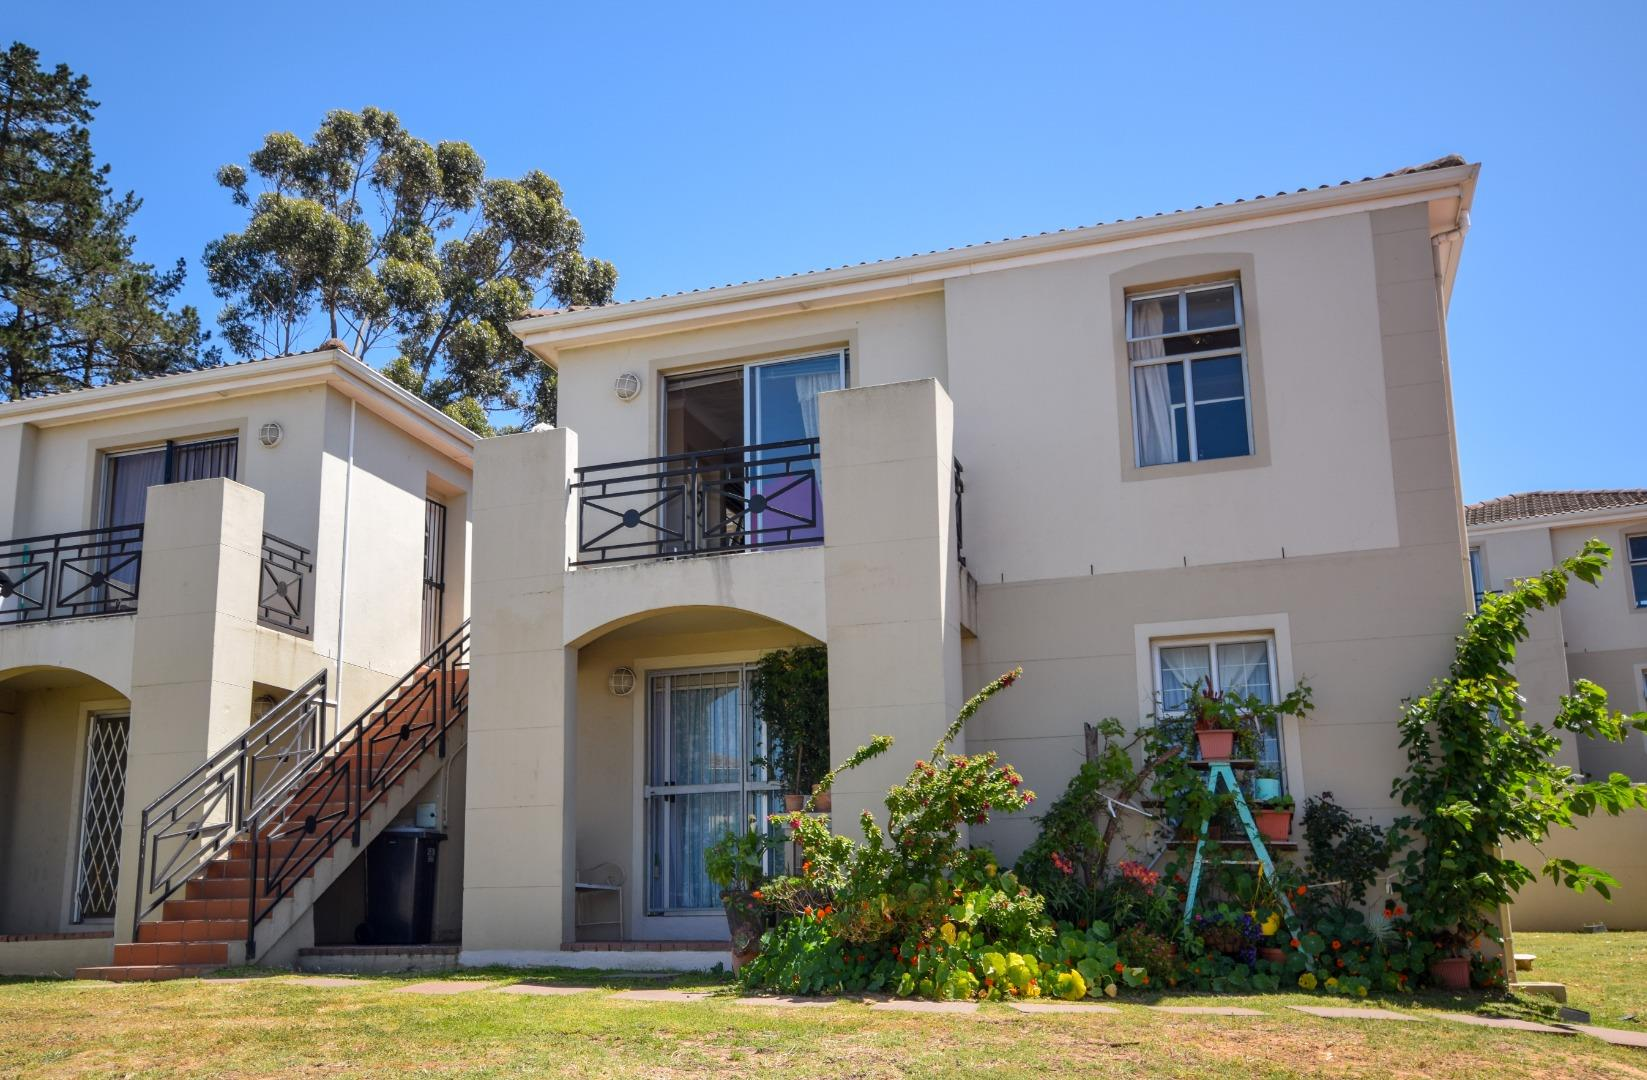 2 Bedroom Apartment for Sale in Vredekloof Heights, Brackenfell - Western Cape